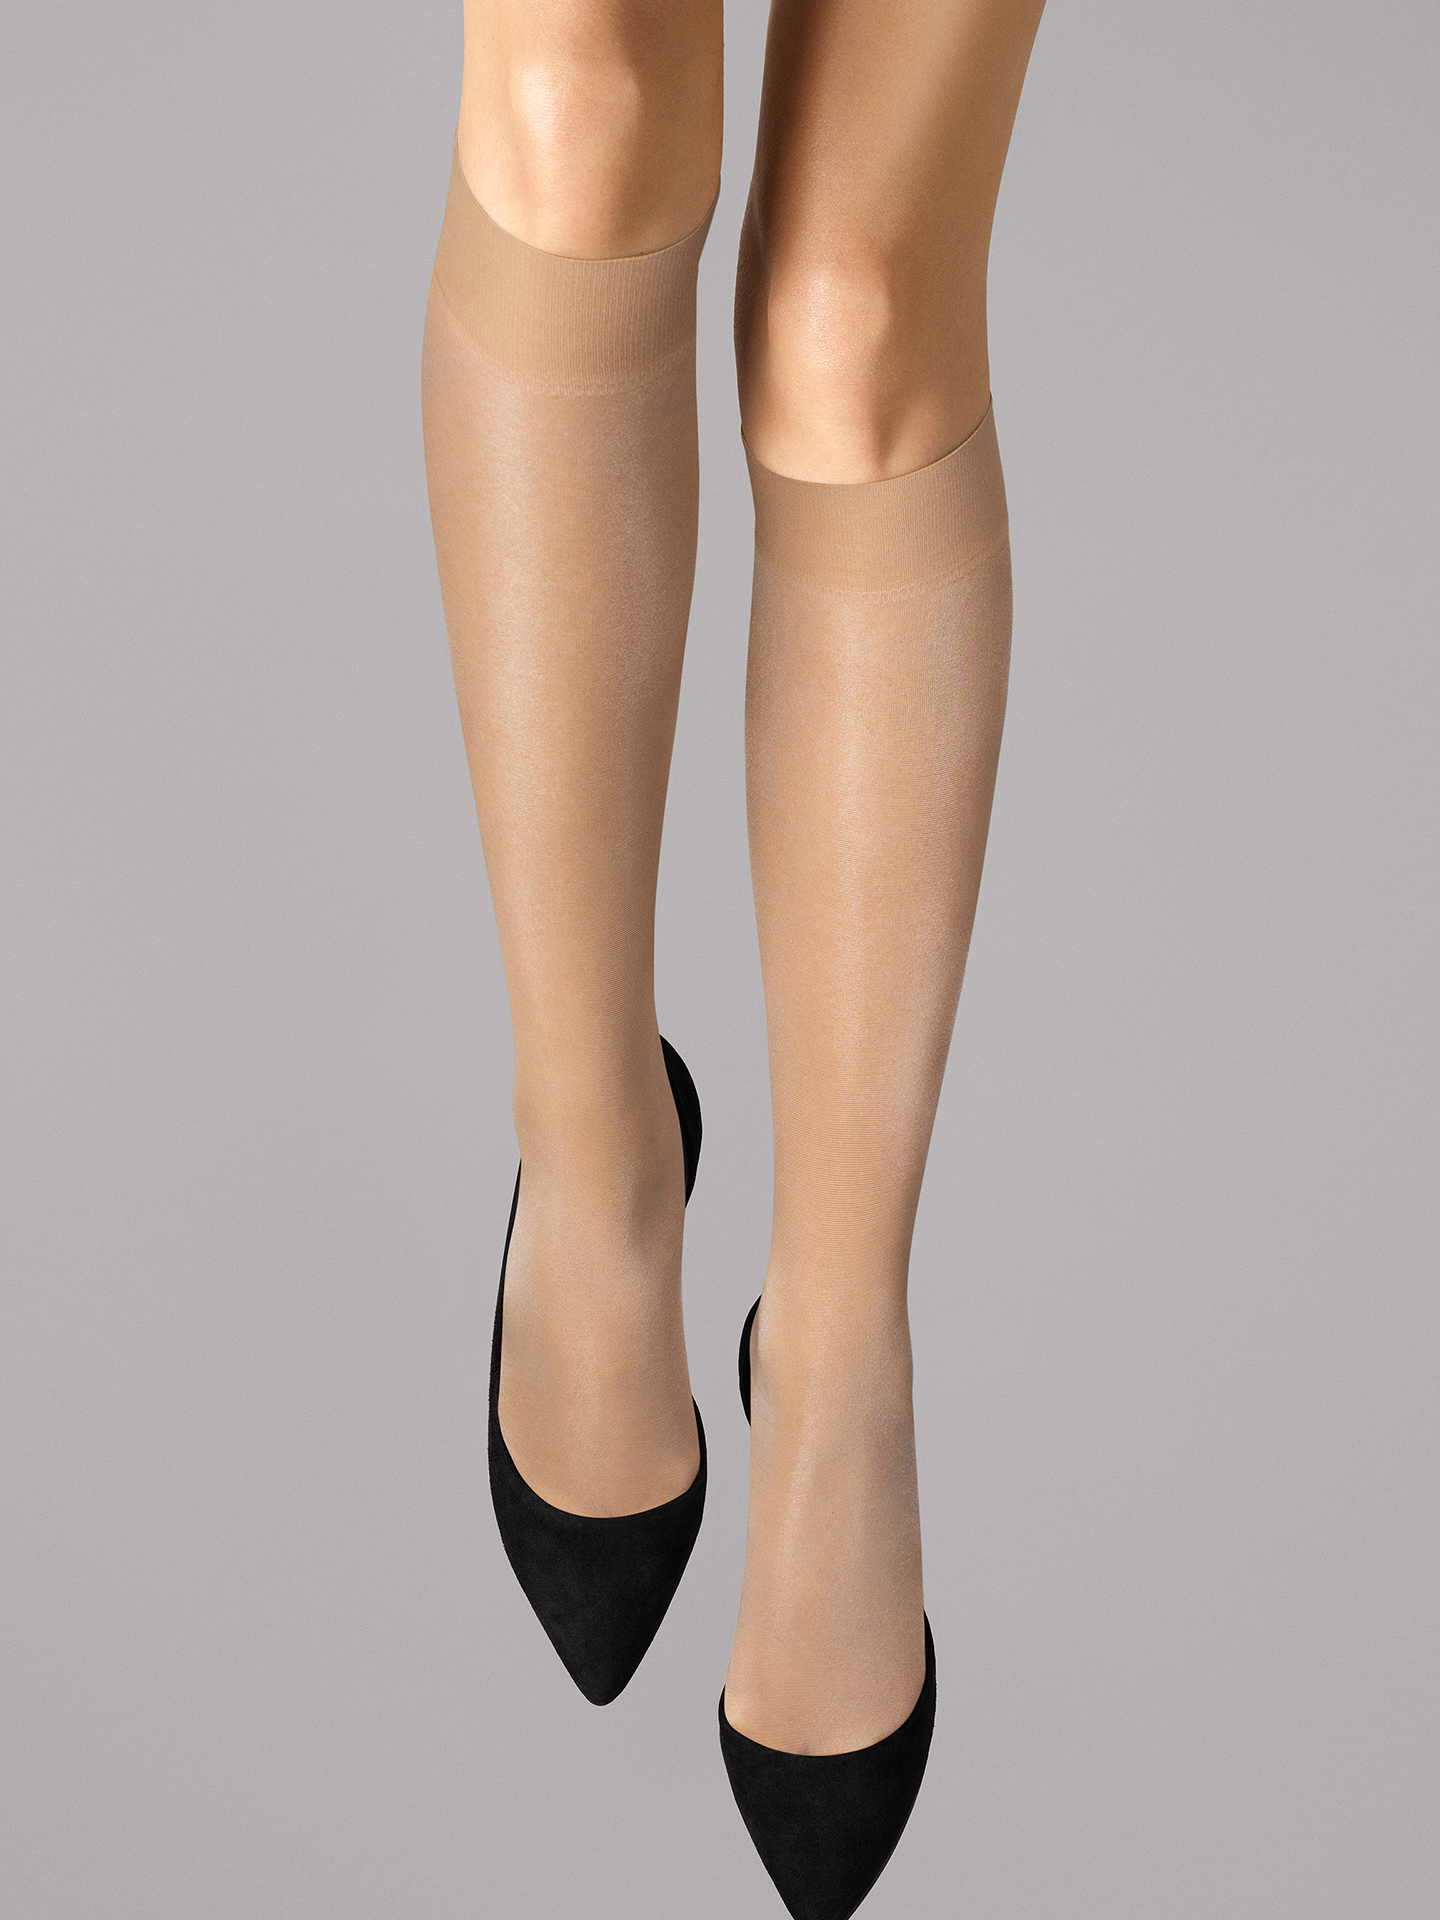 Wolford Apparel & Accessories > Clothing > Gambaletti Satin Touch 20 Knee-Highs - 4738 - M